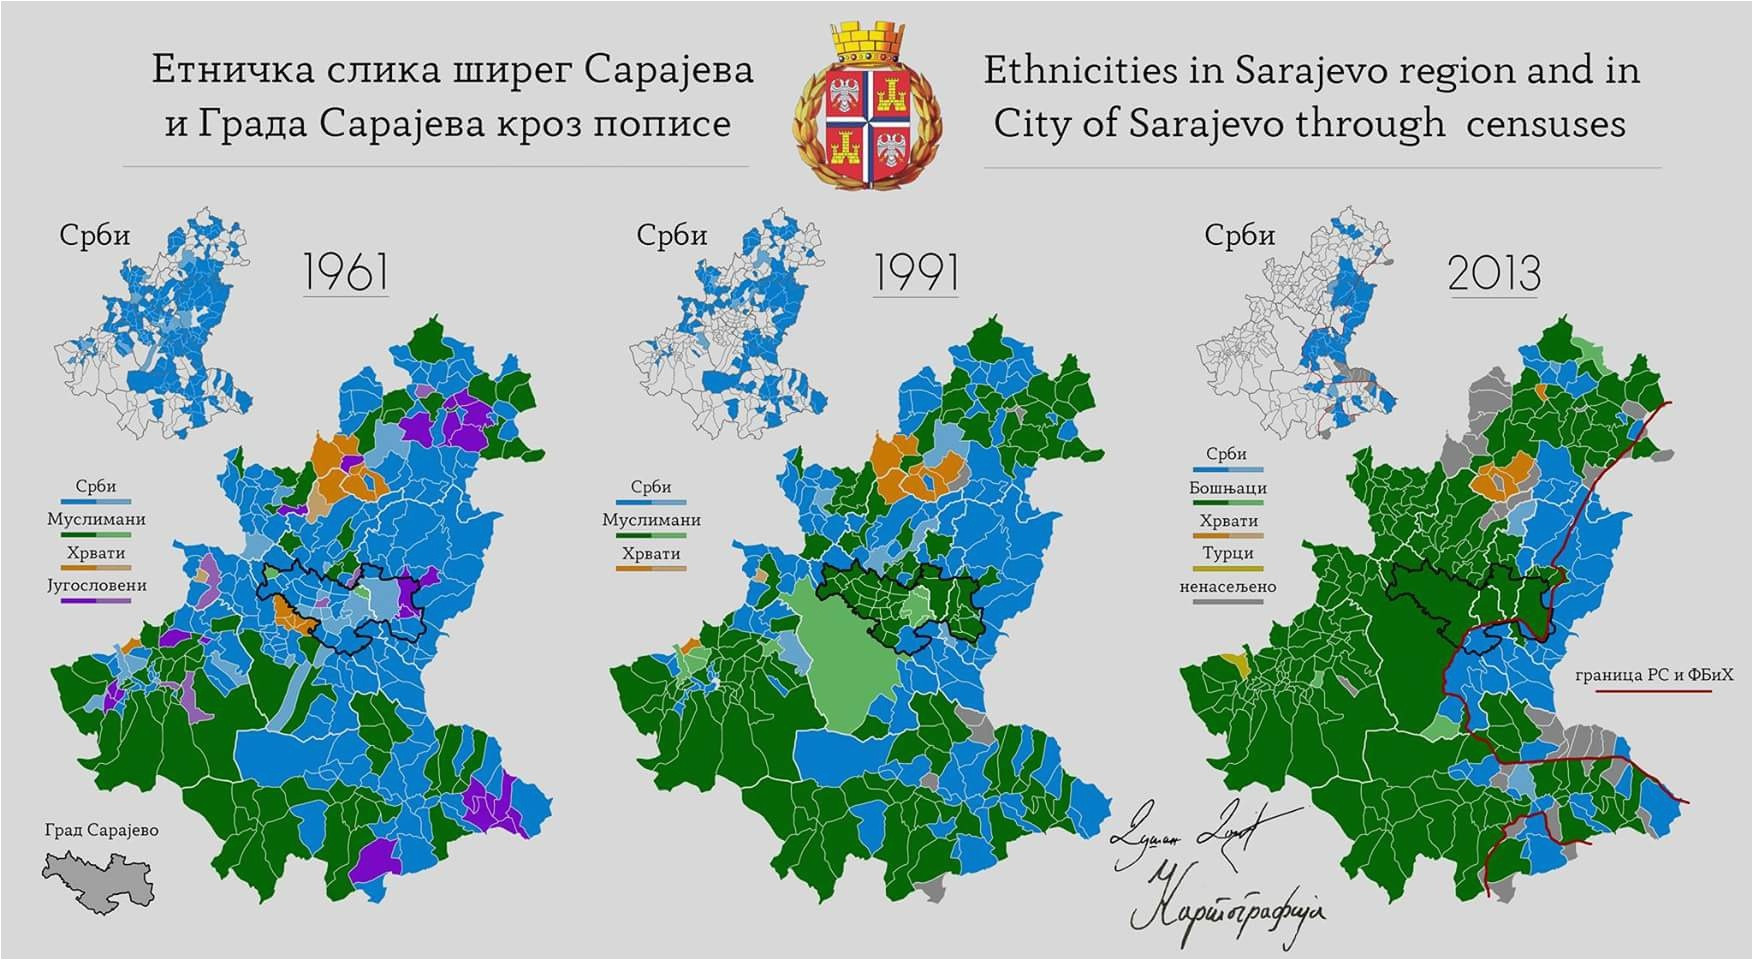 Printable Map Of The United States During The Civil War Beautiful Ethnic Map Od Sarajevo In 1961 Just Before The Civil War And After